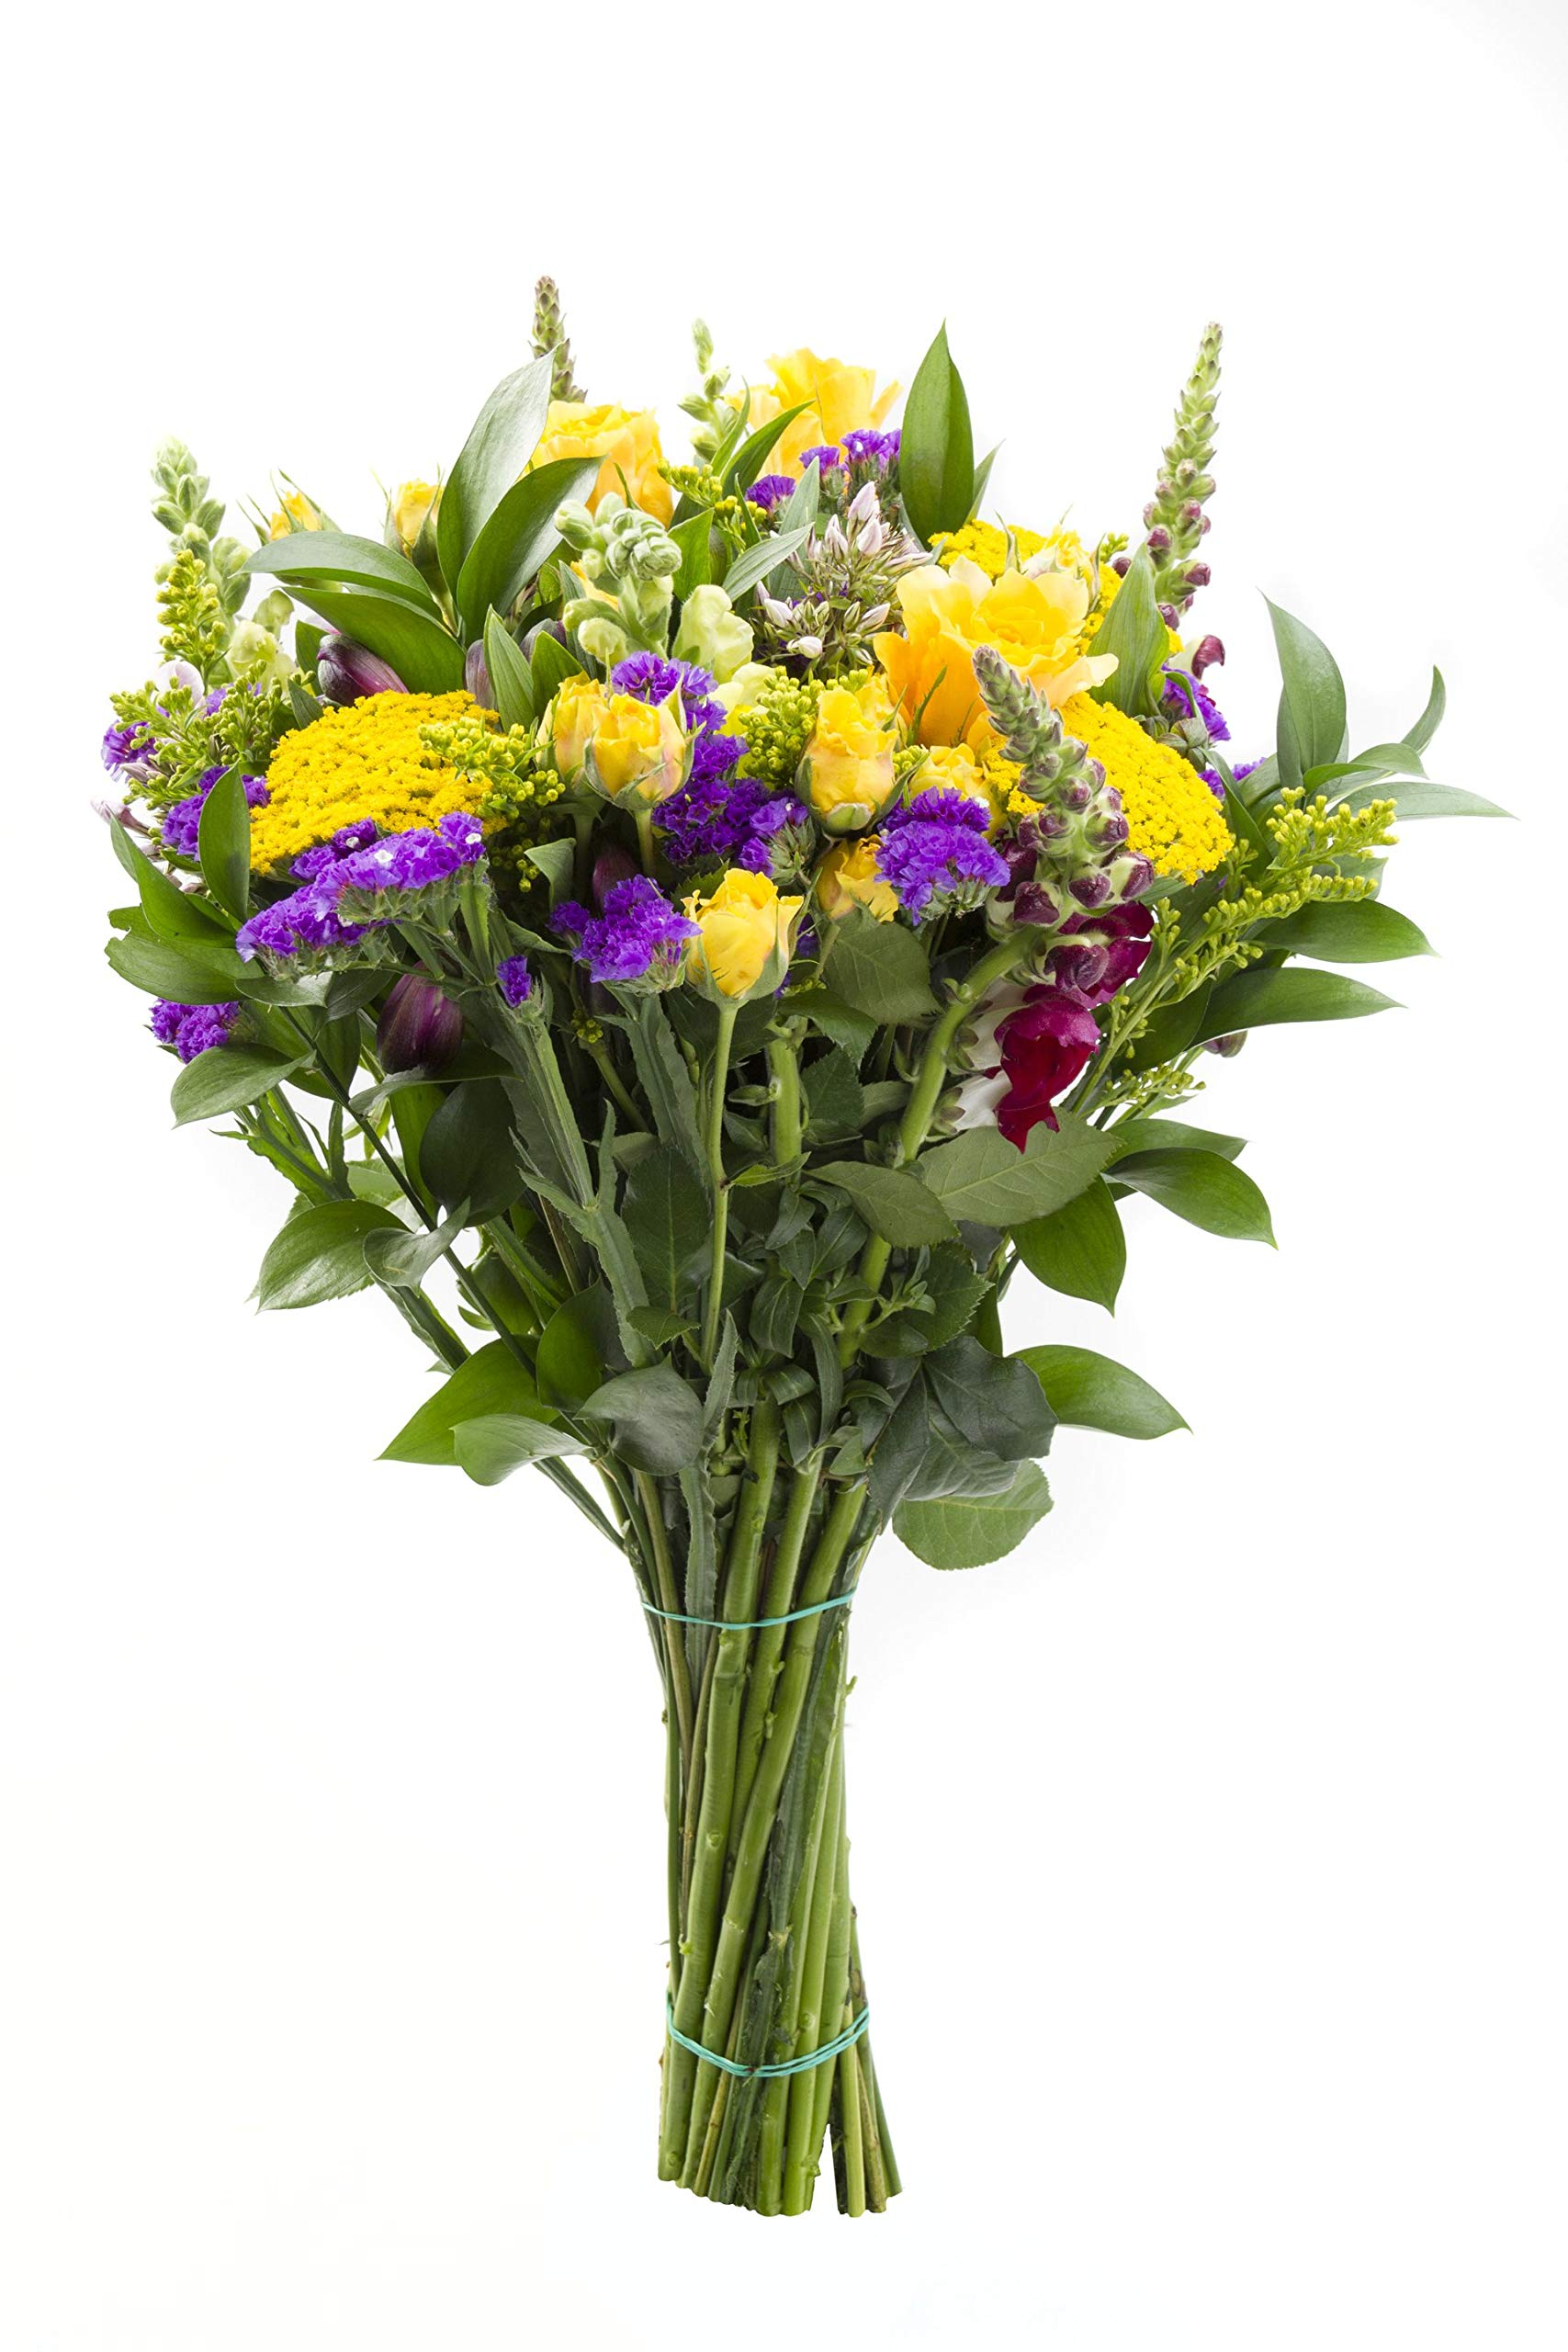 Chichi Party Purple and Yellow Flowers with Roses, Snapdragons, and More Sustainably Grown and Harvested, No Vase Included by BloomsyBox (Image #5)